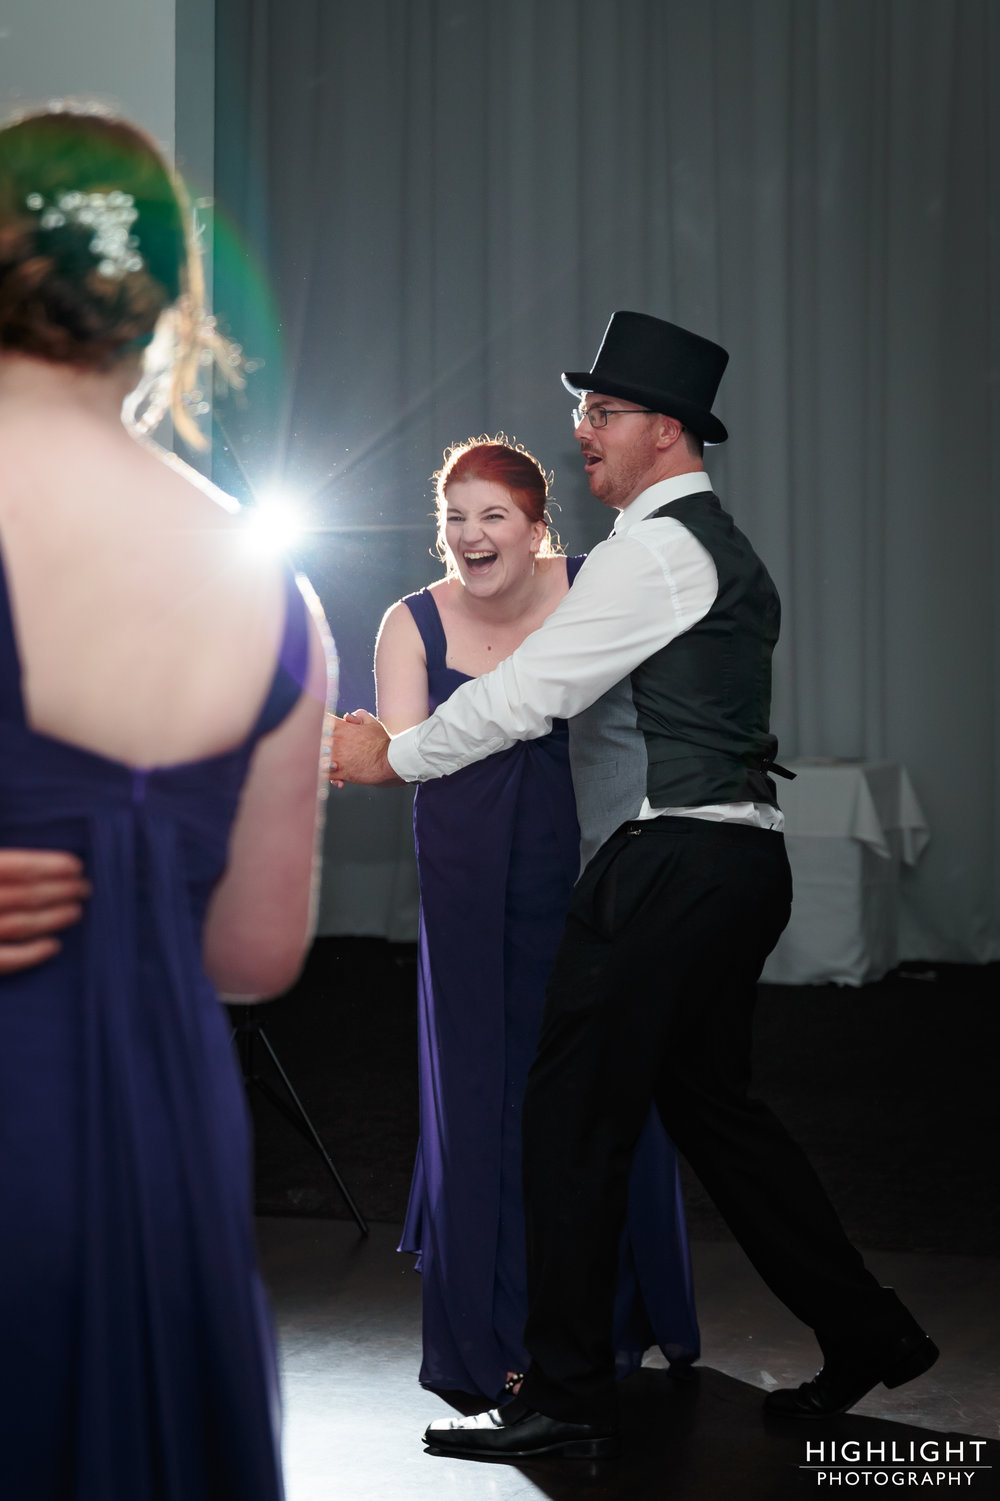 highlight-wedding-photography-new-zealand-palmerston-north-165.jpg